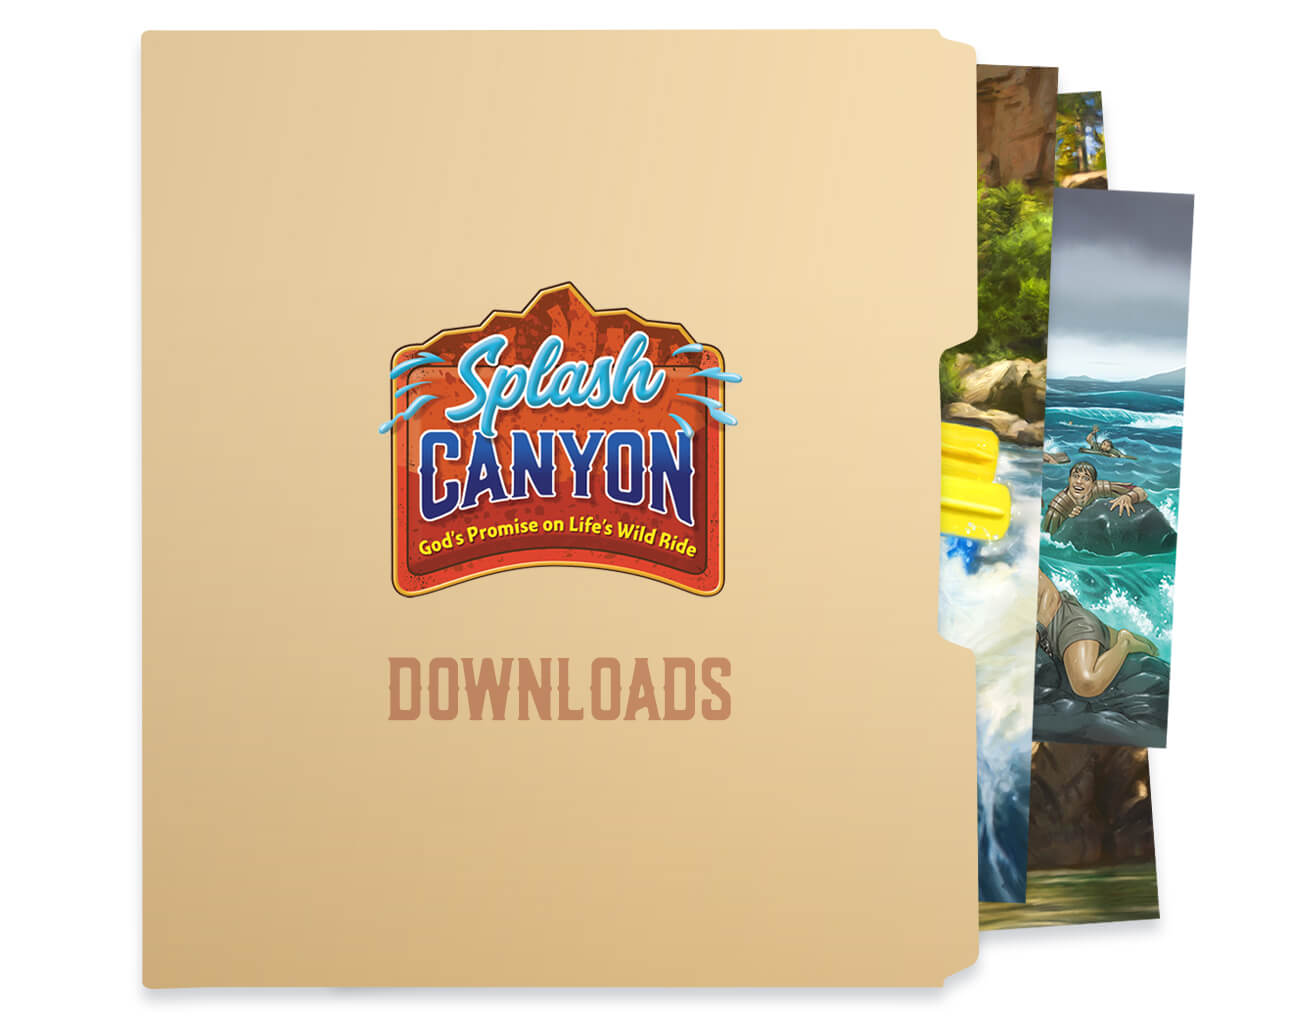 vbs_download-icon